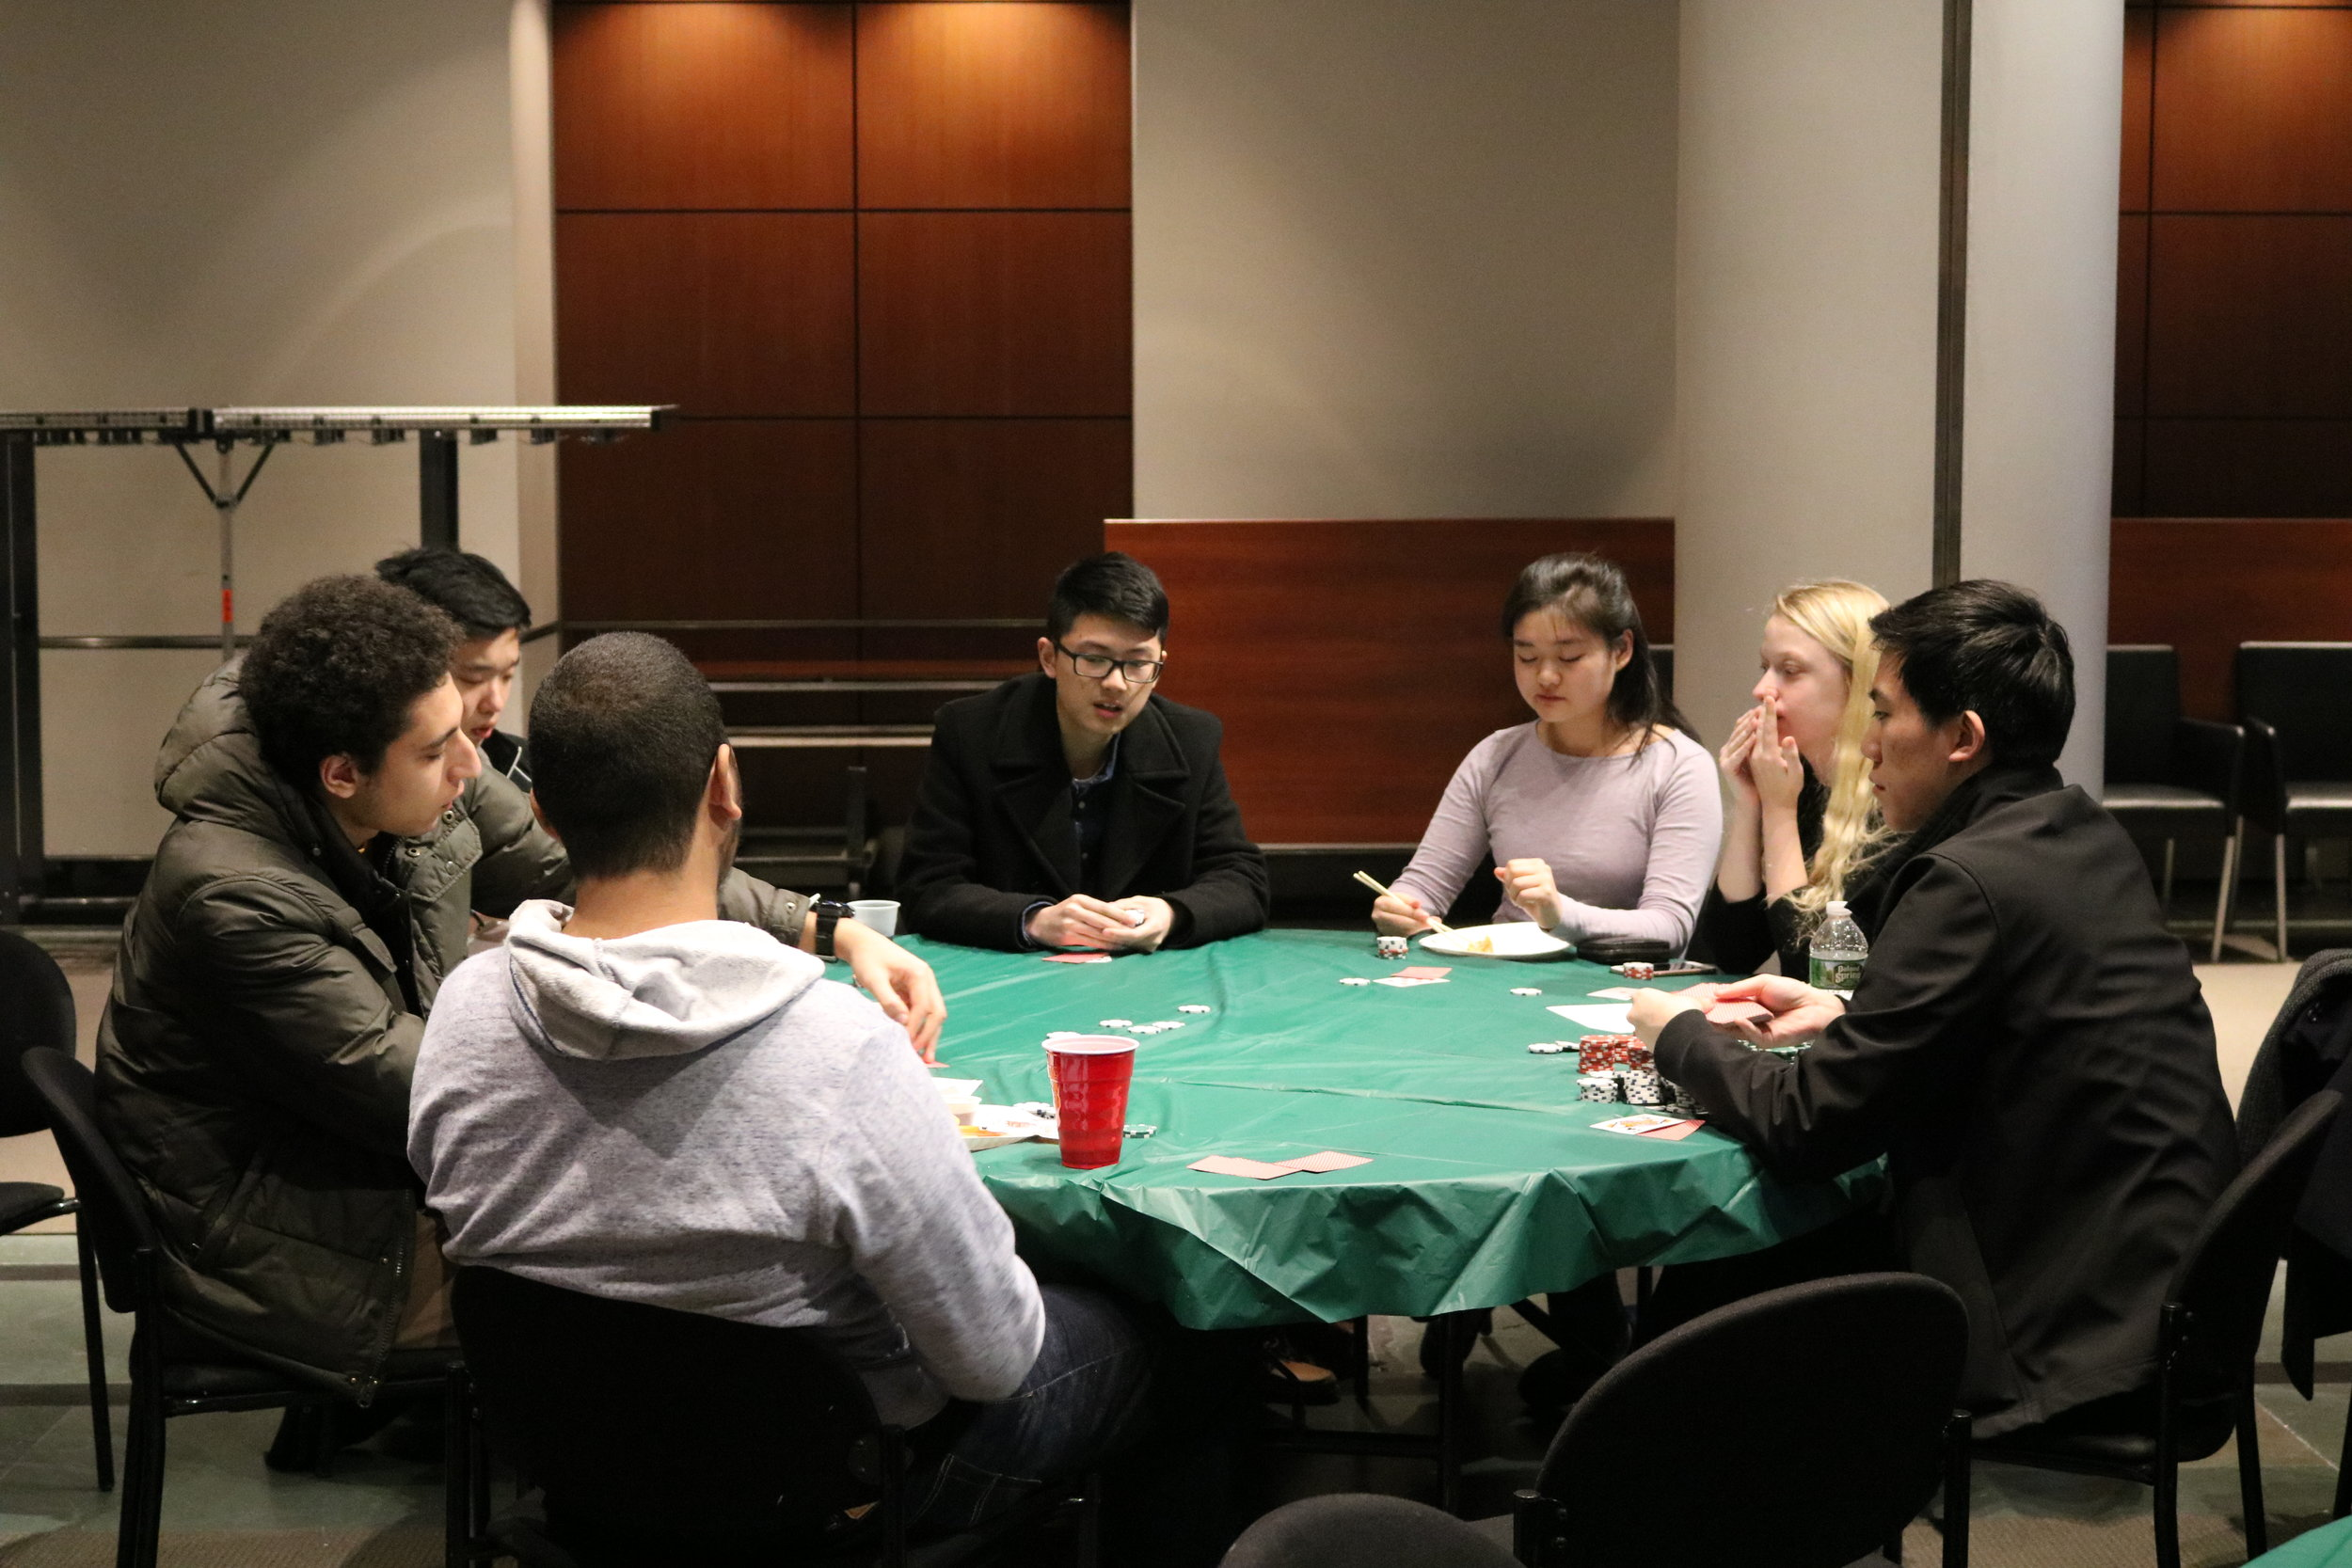 Group of Students Playing Poker